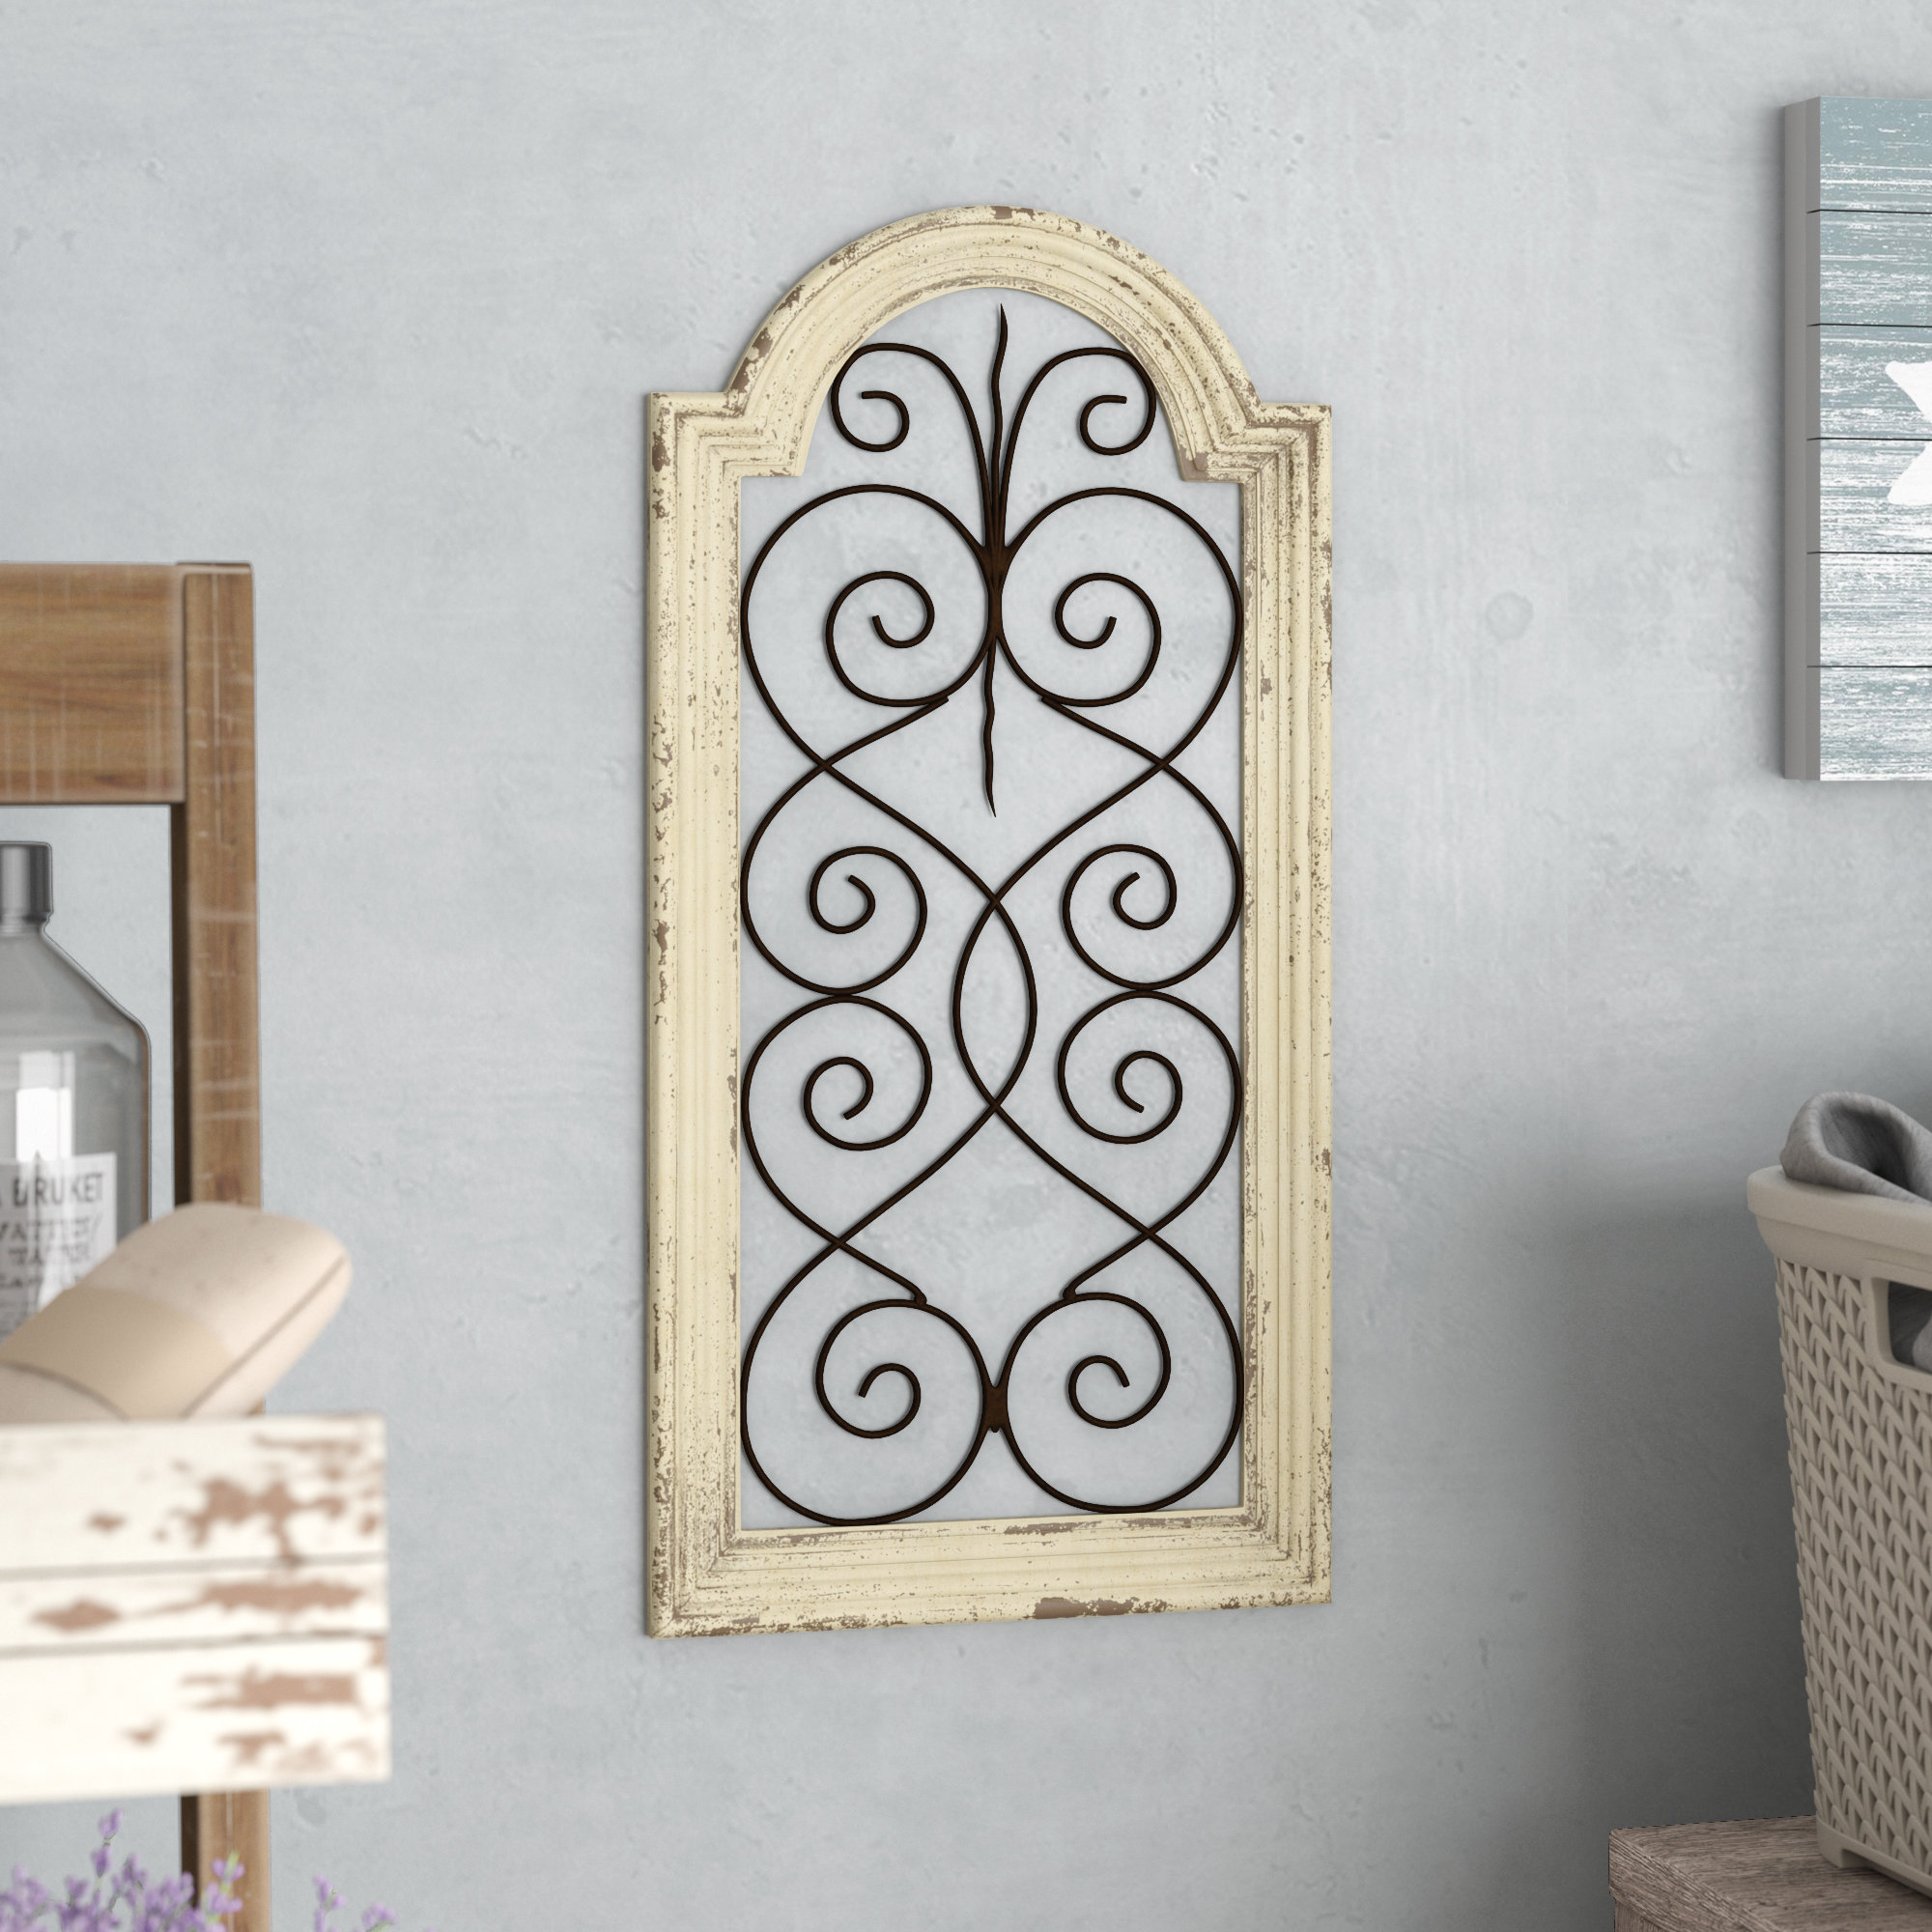 Wayfair Throughout 4 Piece Metal Wall Plaque Decor Sets (Gallery 20 of 20)